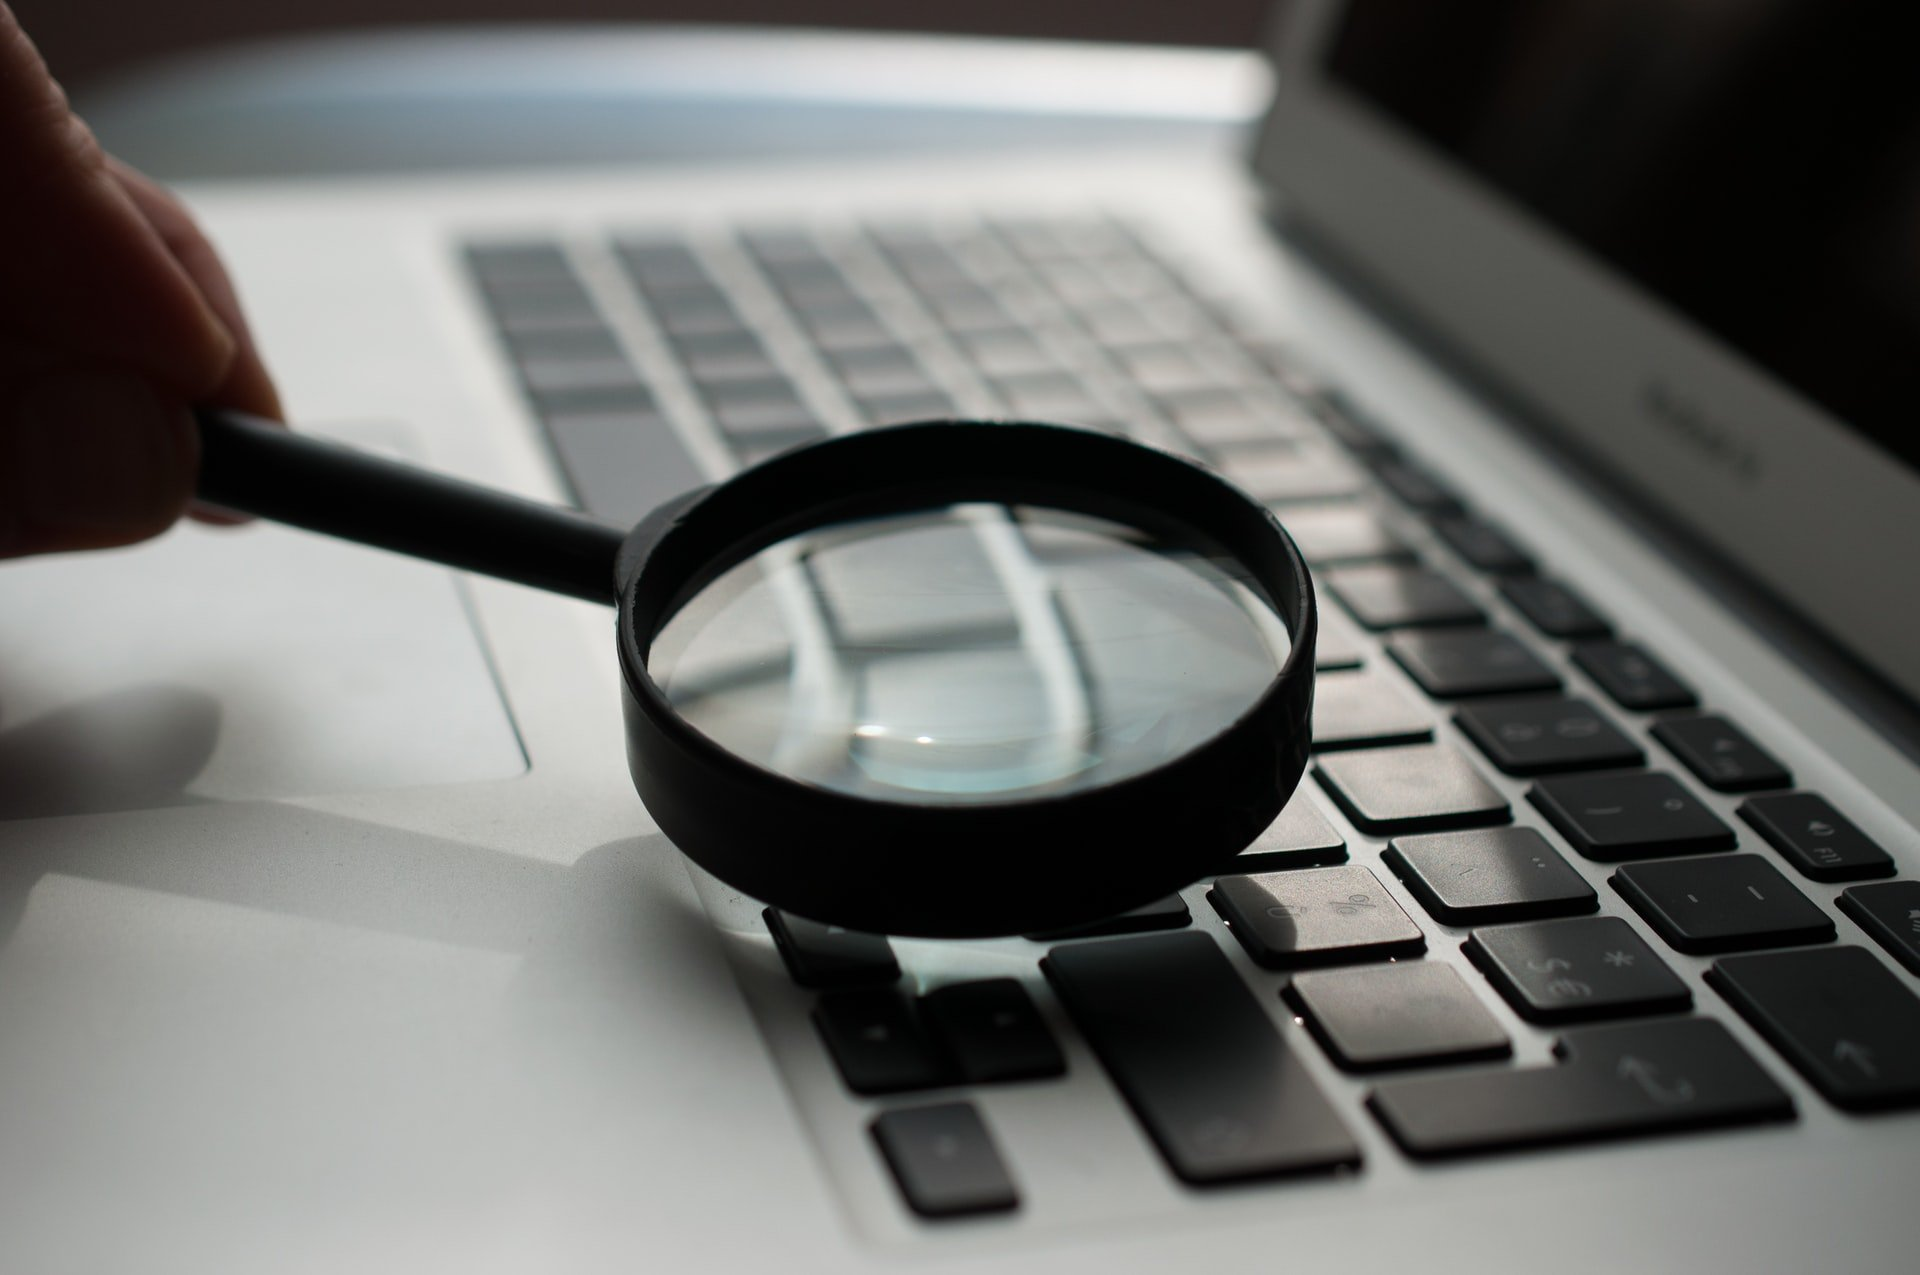 keyword research and analysis for website